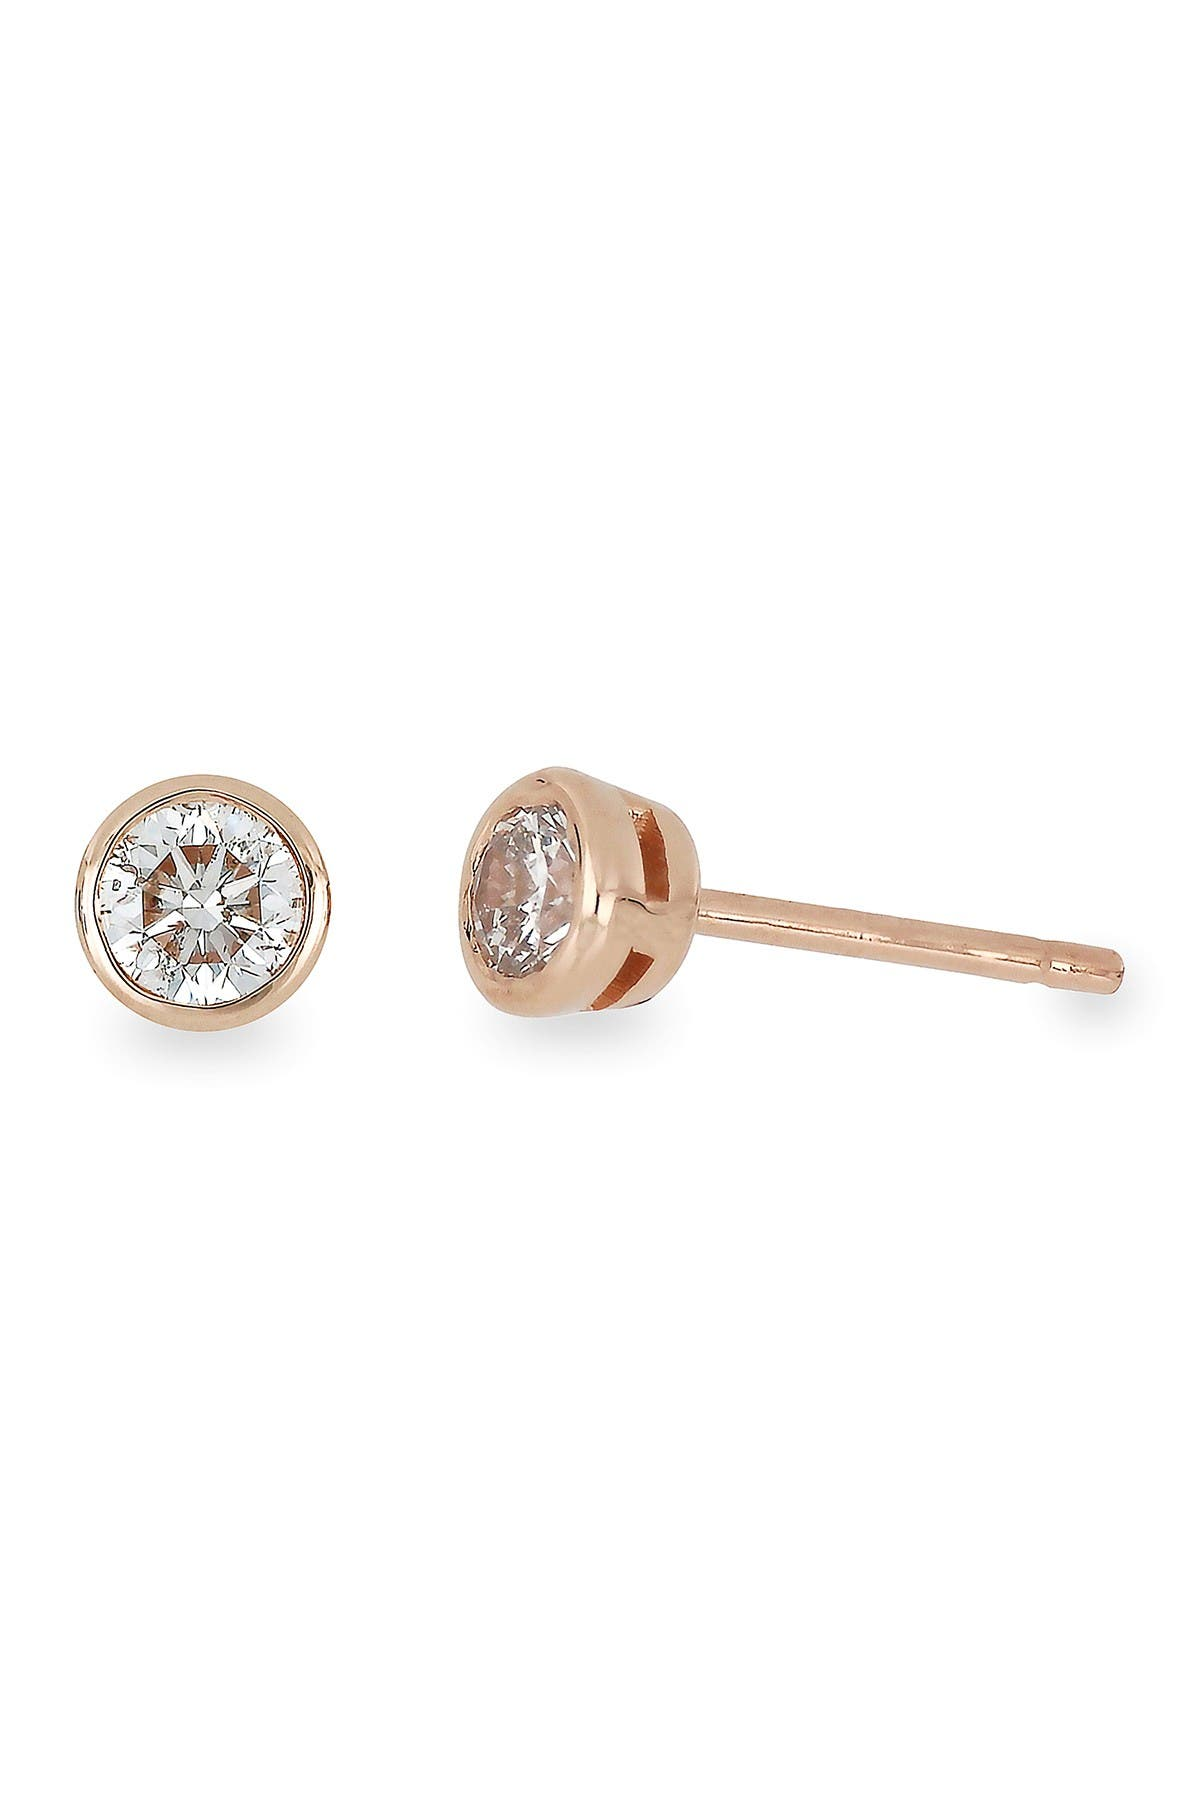 Image of Bony Levy 14K Rose Gold Bezel Set Diamond Stud Earrings - 0.25 ctw